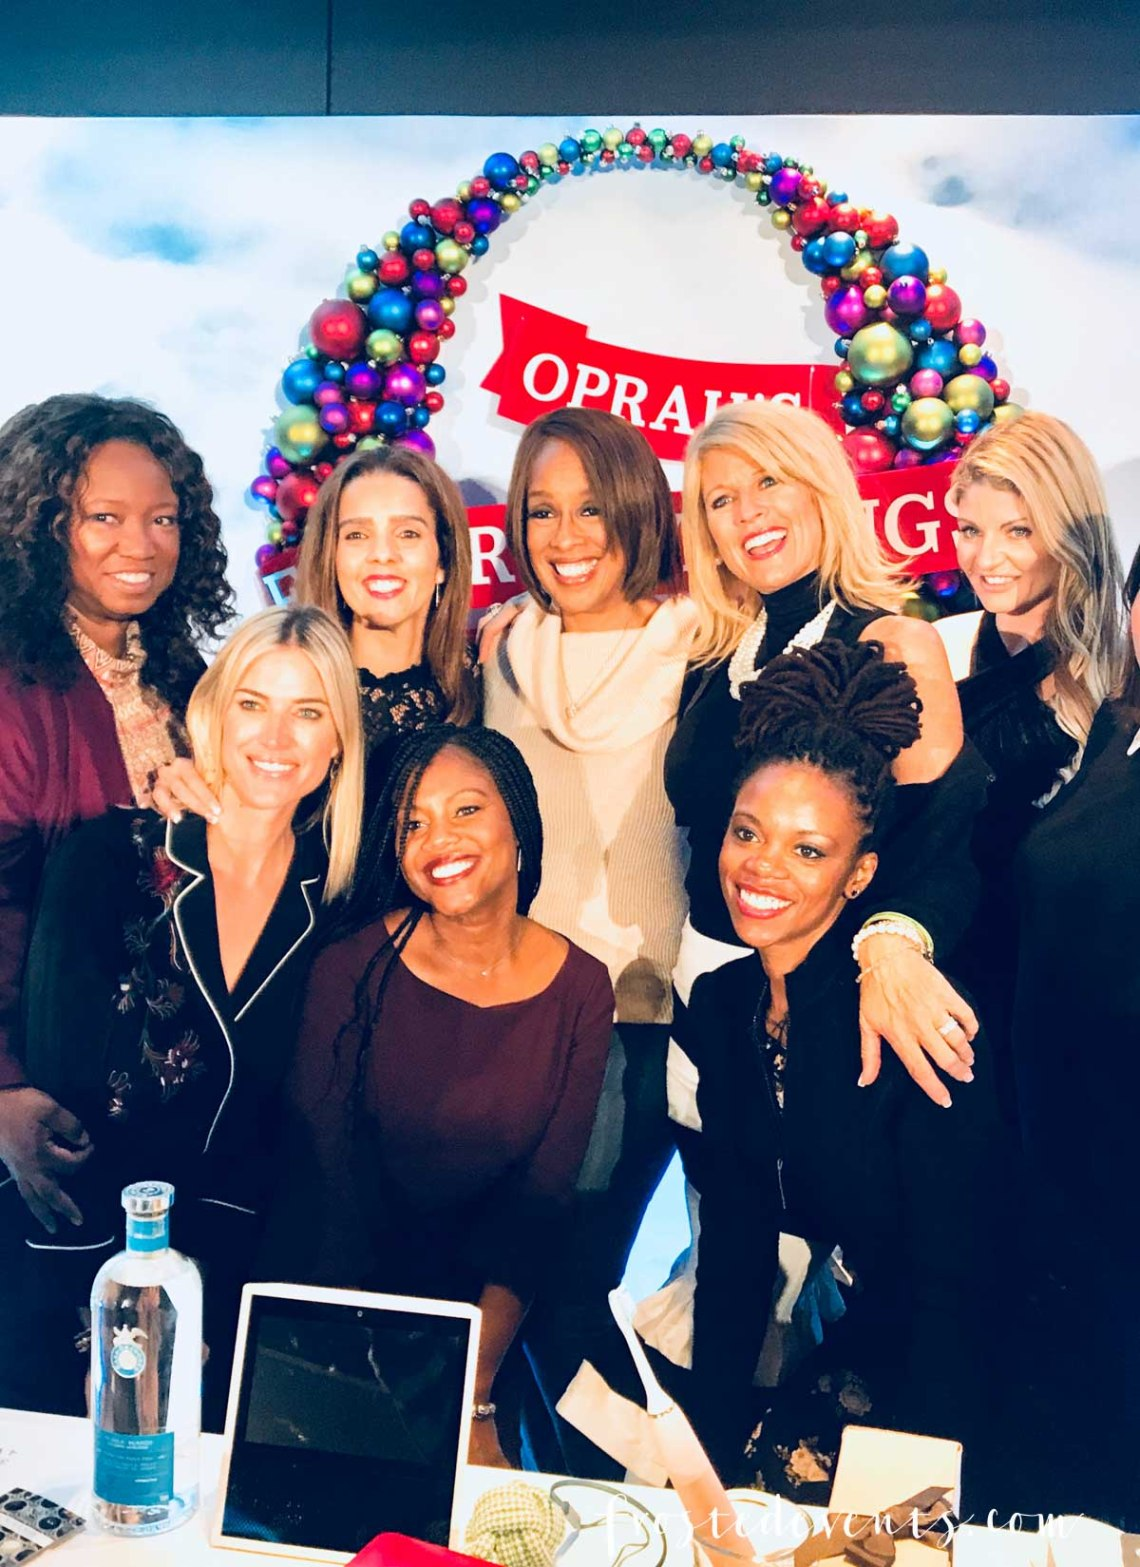 Oprah's Favorite Things 2017 party was last Thursday and I had the unbelievable opportunity to attend and reveal a very exciting secret I've been dying to share. Here's a look at what it's like to be a guest at the best holiday party ever!....  As an OMagazine Insider I get invited to participate in some pretty cool experiences. But never in my wildest dreams did I imagine that I would be invited to Oprah's Favorite Things party! Ya'll, I'm still completely in shock and covered in bruises from pinching myself about a million times. Oh, how I wish you could have seen the happy dance that I did when I opened the email invitation. It would be a viral video for sure. Something comparable to lottery ticket winners or Justin Beiber fans who find out they're going to get to meet the Biebs backstage. There was screaming, lots of screaming... and even tears of joy. Maybe wails of joy, sobs. Ok, I was a sobbing, wailing, ecstatic hot mess. It was truly that exciting! Here we are in the elevator on our way up to the party. I adore my  OMag Insiders tribe! It's such a wonderful group of inspiring ladies from all walks of life. They are creative, brilliant, funny, strong and successful as hell. But what really makes them special is the love and support they so generously share with each other. I'm so blessed to be a part of this family! My heart was racing as we made our way into the room. You could feel the buzz of excitement walking in, a mix of media and marketers, executives and a few celebrities too! Our fabulous elf Cara guided us to our table by the stage before giving us a mini tour of the party. A cocktail bar featuring Oprah's favorite tequila, Casa Dragones was serving up drinks at the back. Guests were taking pics with the life-size replica of the December O Magazine photo stand-in. I grabbed a cocktail, some nibbles from the delicious food spread and a cupcake (or two!) and mingled a bit before the show began. Gayle King and Adam Glassman were our hosts for the even